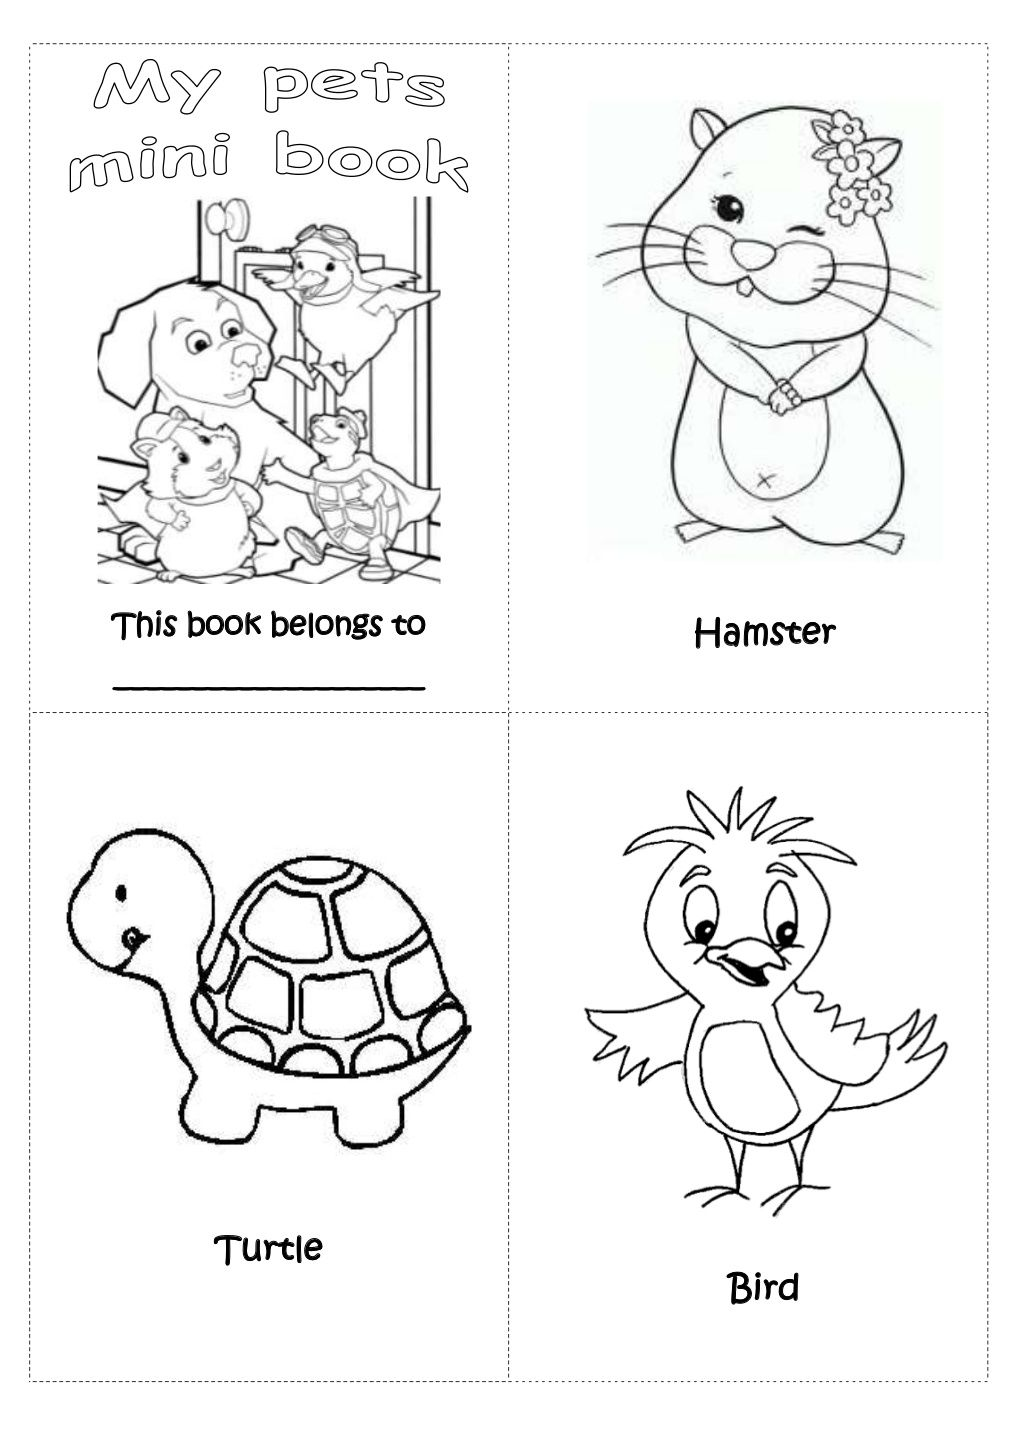 Pets Mini Book Preschool By Eraquelcq Via Slideshare With